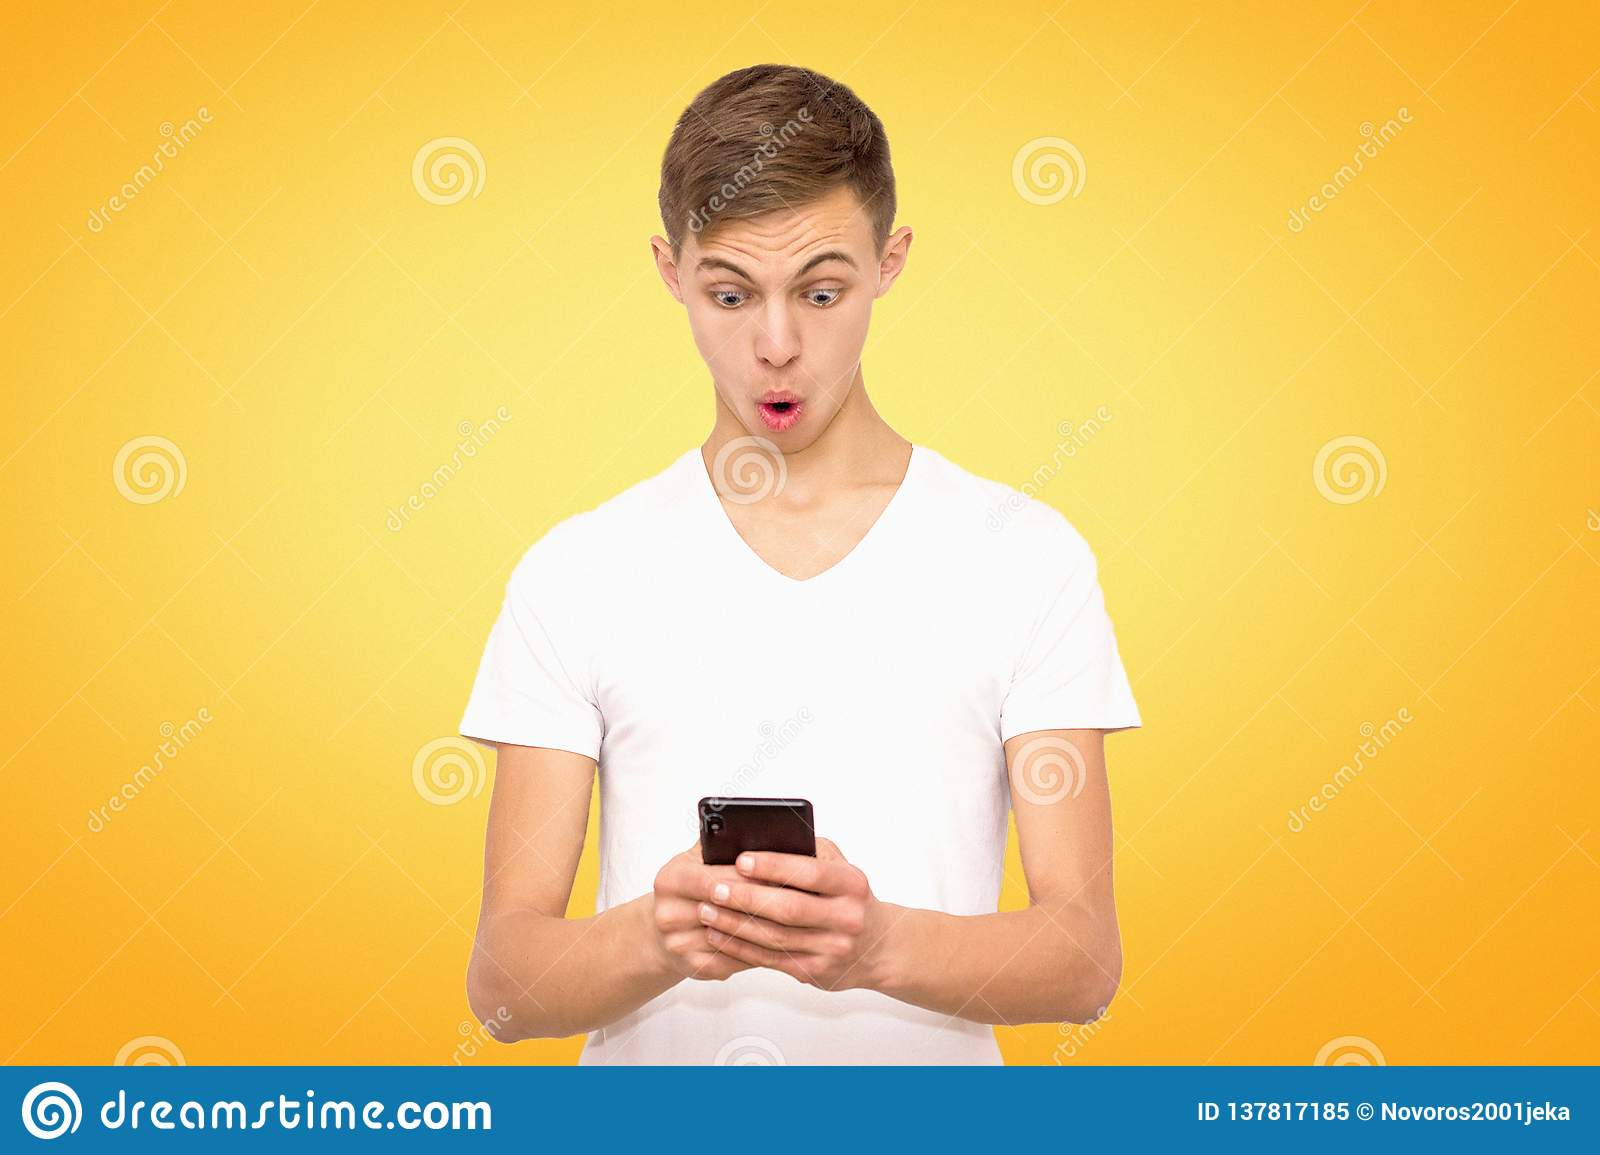 Surprised guy in white t-shirt with telephone, isolate, man on yellow background